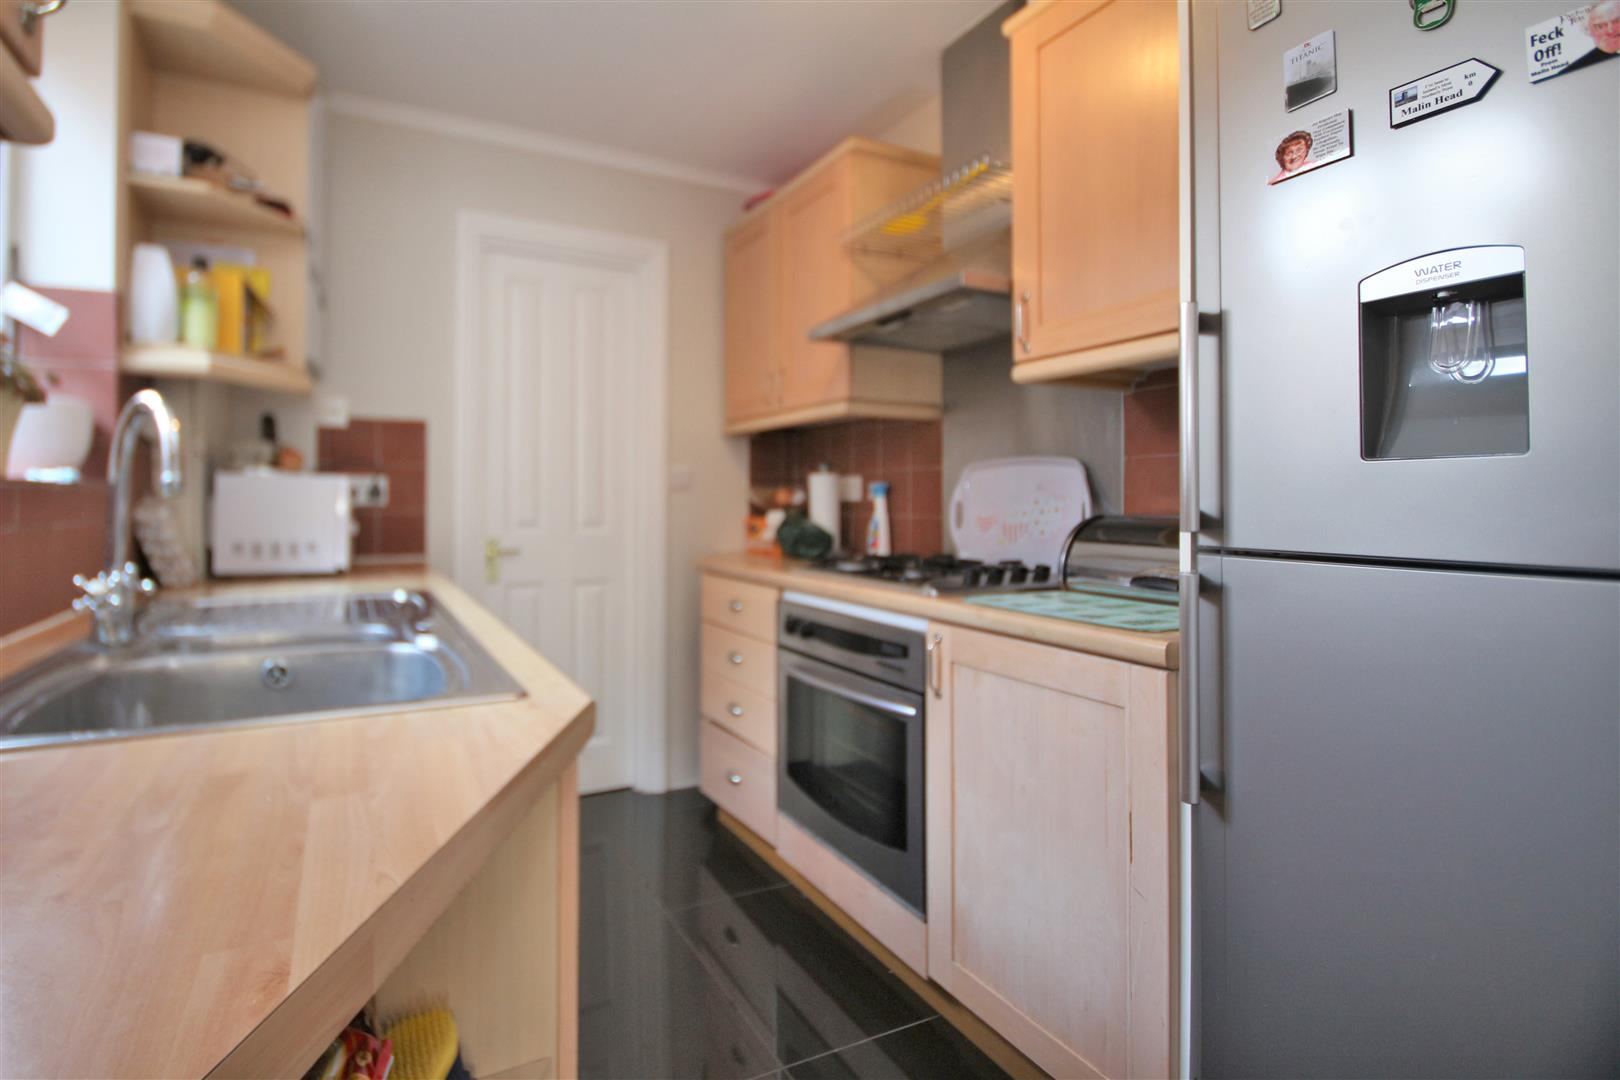 2 bed to rent - (Property Image 2)